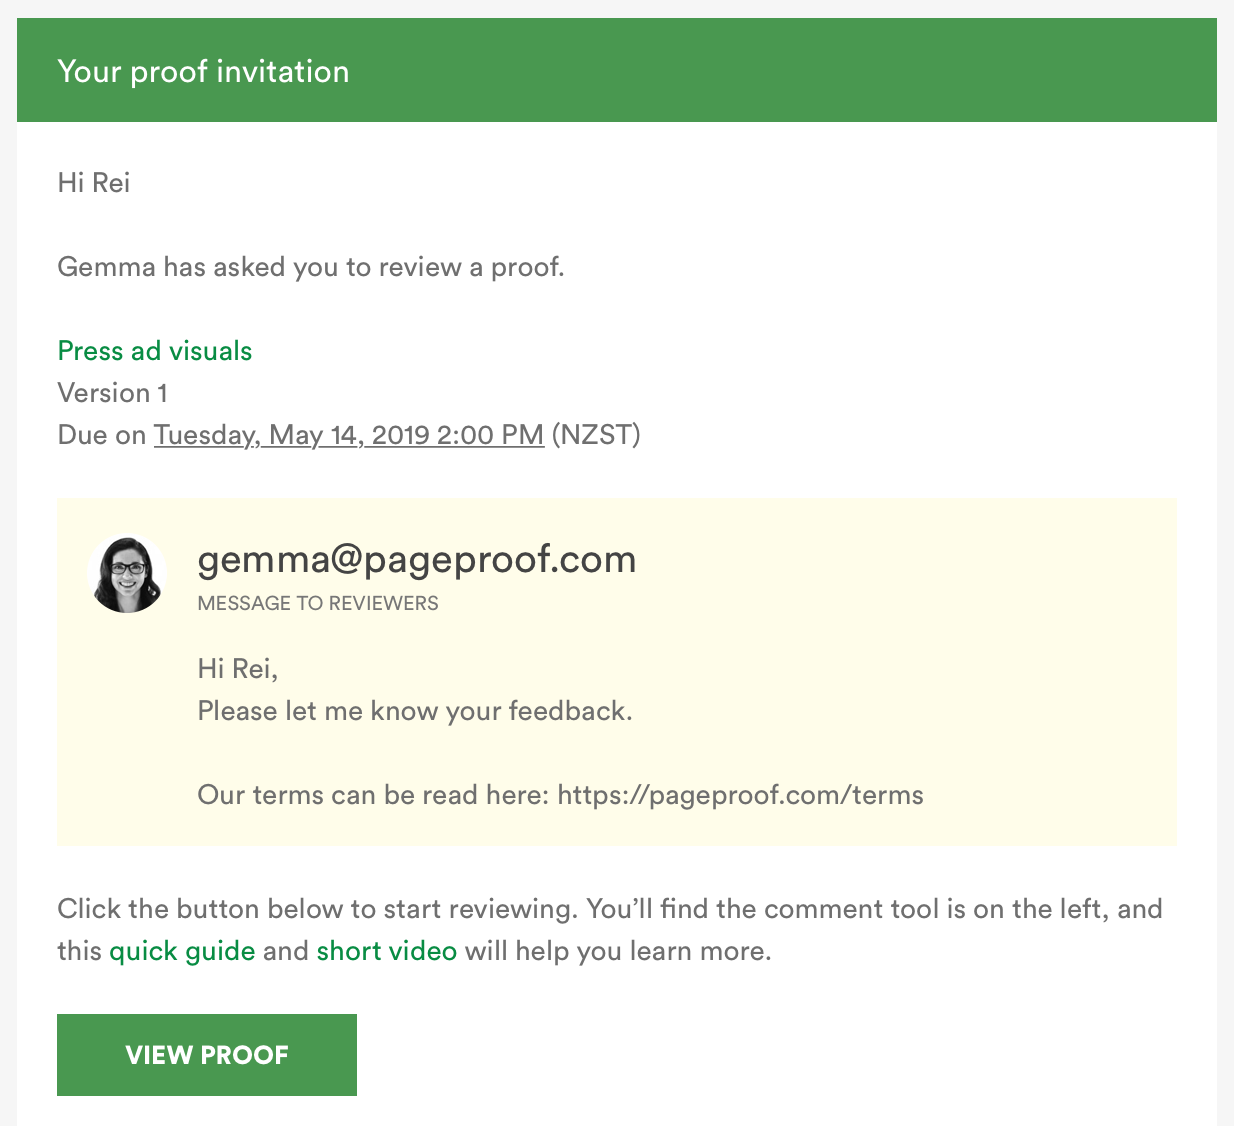 Proof invitation email example